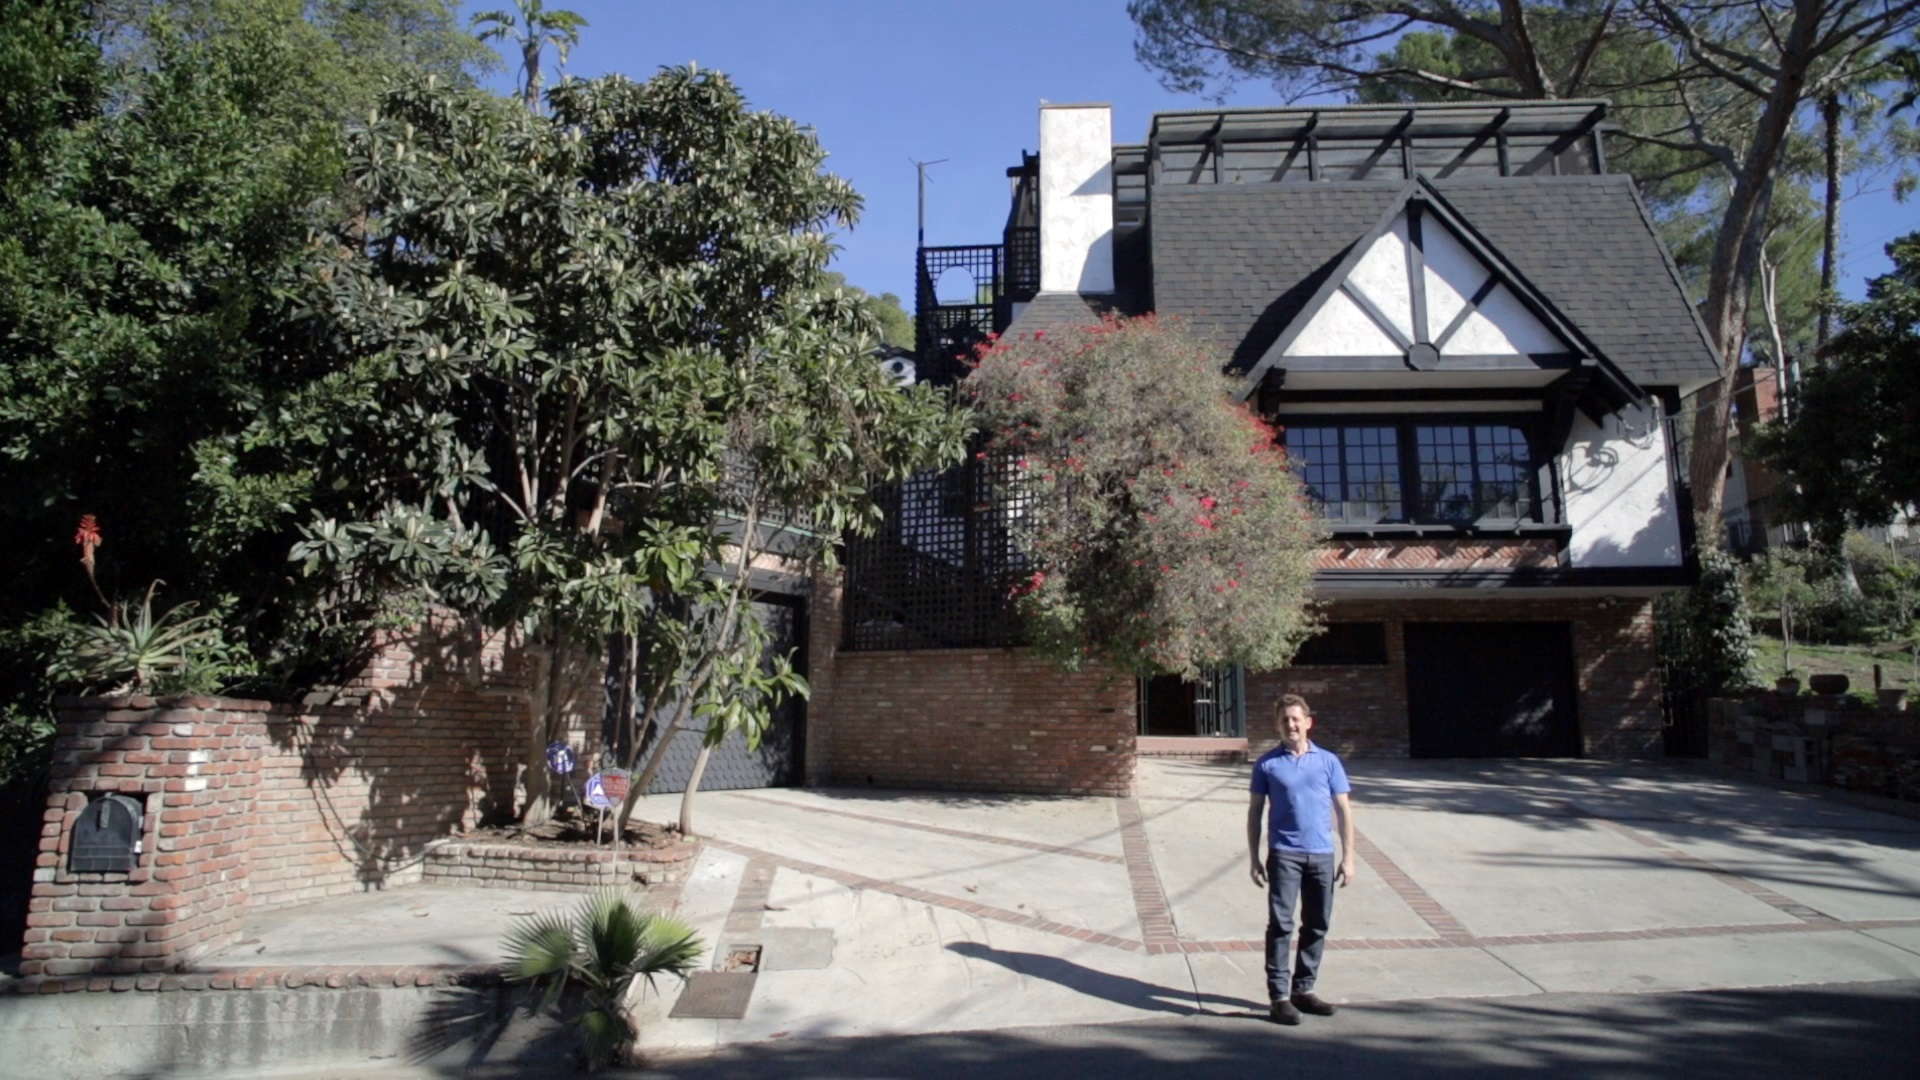 Freak Out Buy Frank Zappas House For 9 Million Cbs News